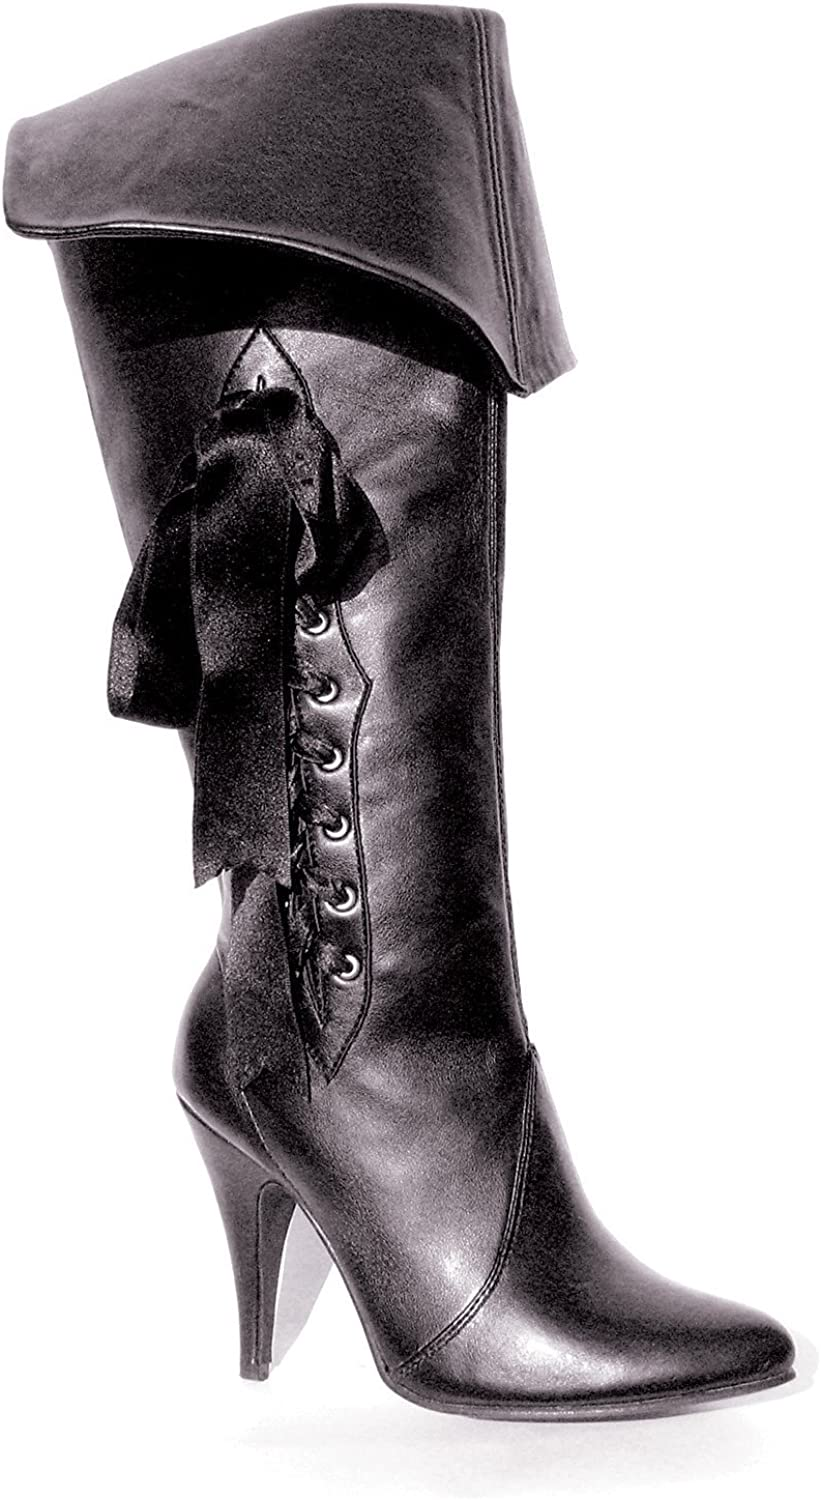 Ellie Shoes Inventory cleanup selling Limited time sale sale Women's Pirate Boot 418